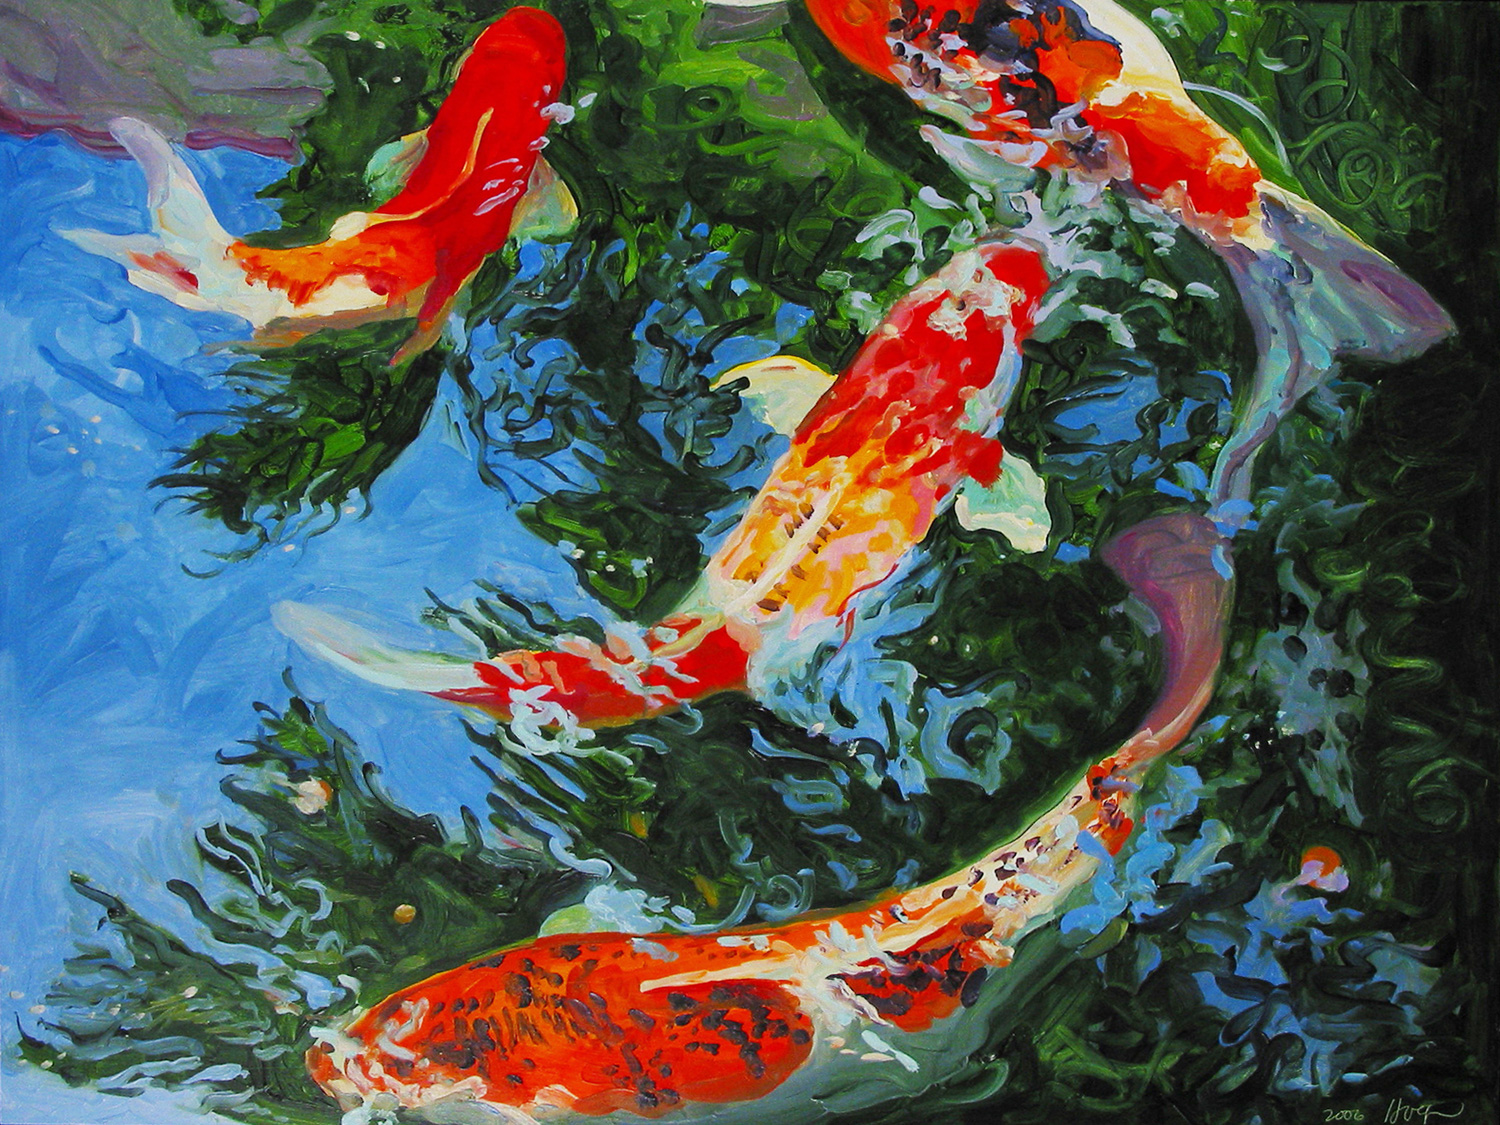 Koi fish paintings koi paintings nature paintings koi for Koi fish water